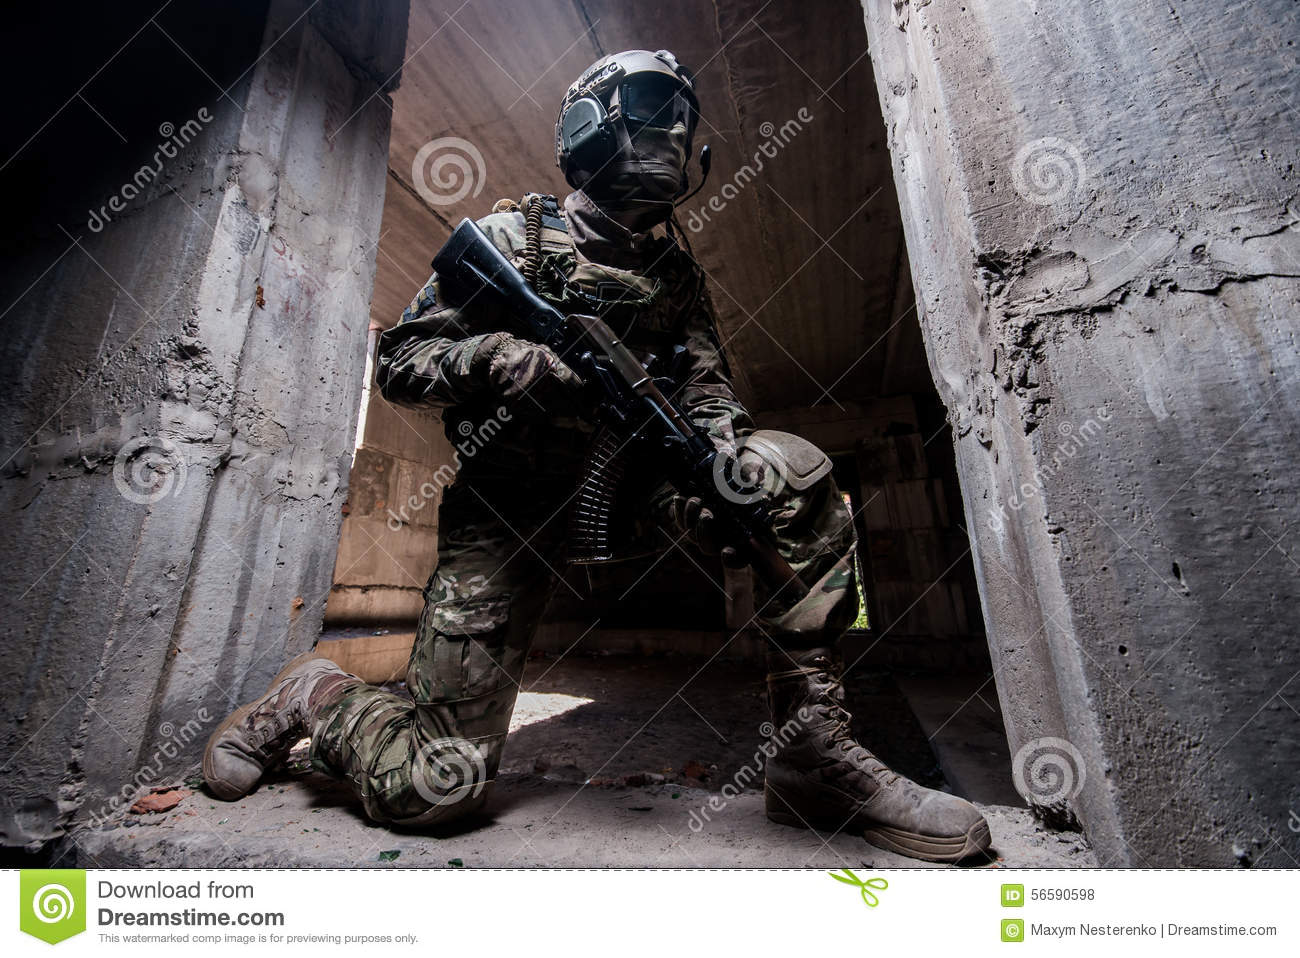 ier hiding in a concrete behind cover where kneeling in the ier hiding in a concrete behind cover where kneeling in the doorway a gun in